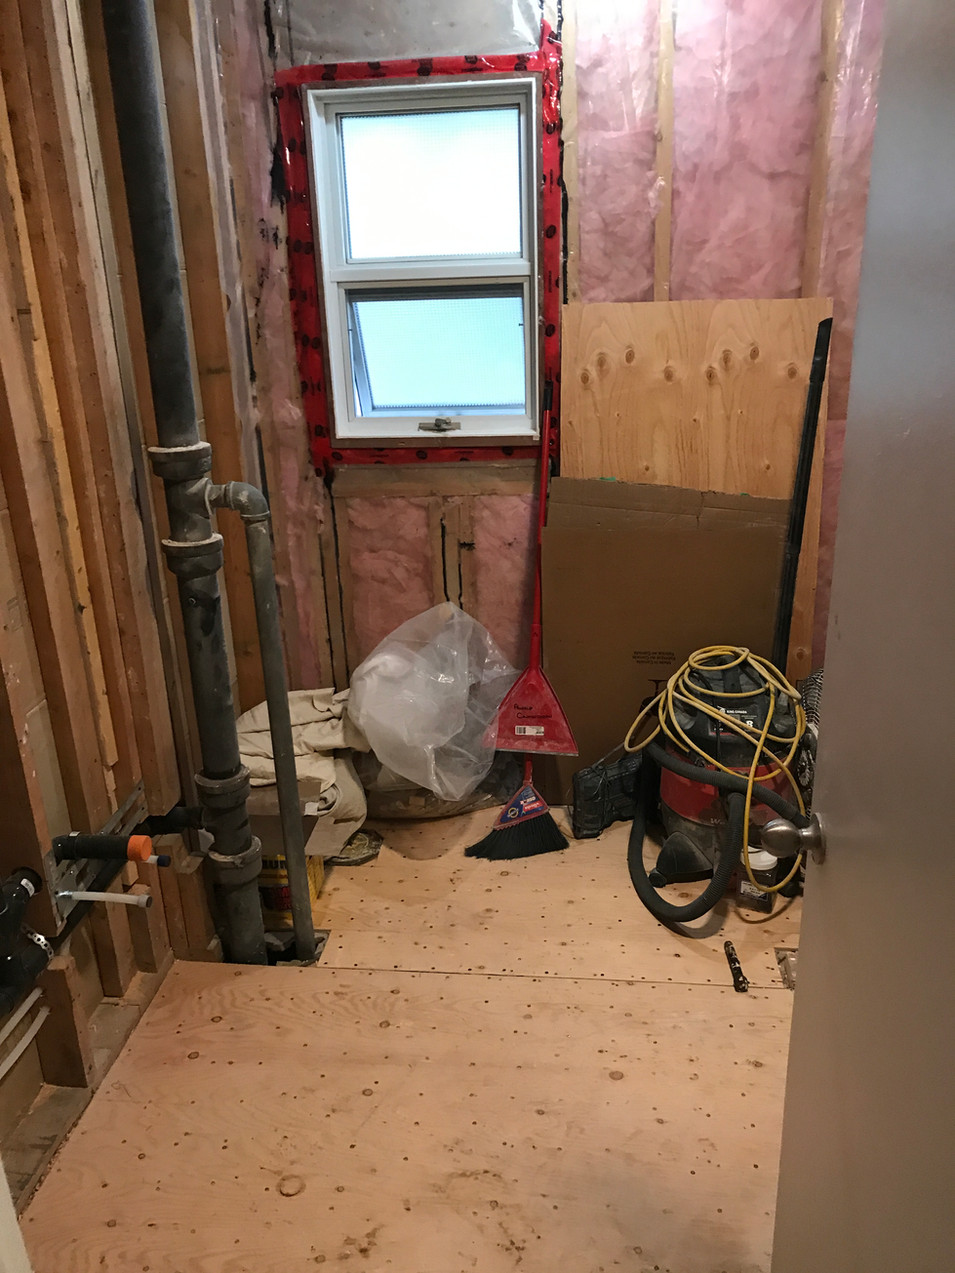 we were originally hoping to completely open up the space, but once we started demo we realized that the main stack was in between the toilet and vanity.